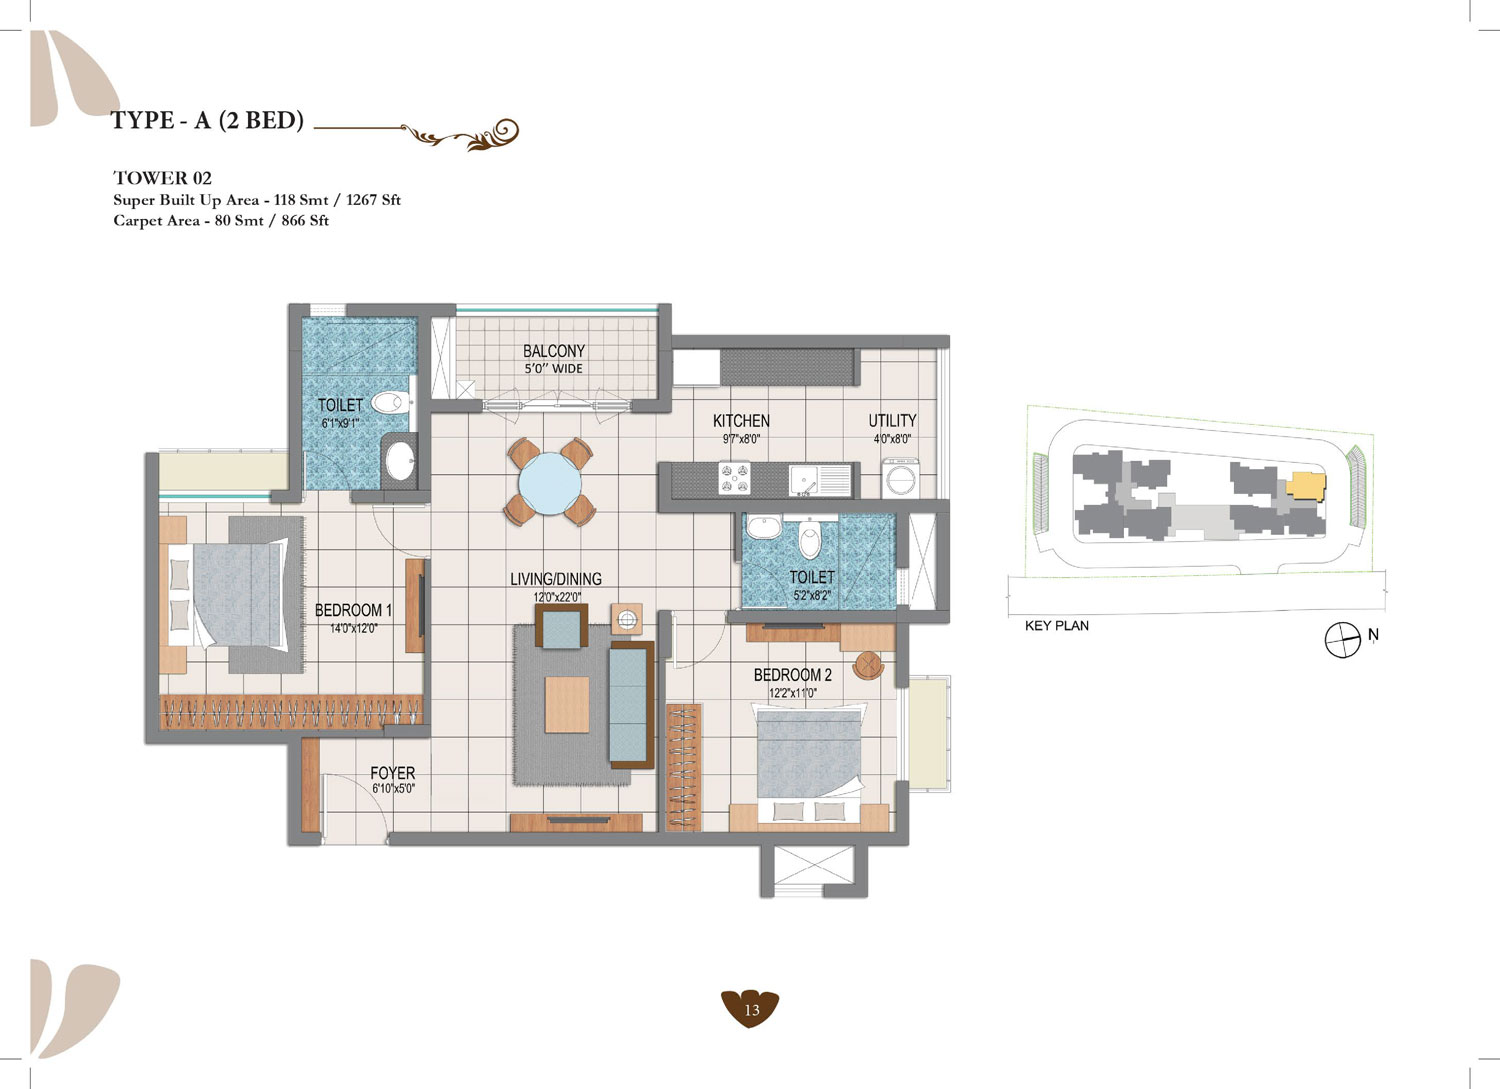 Type A - 2 Bed - 1267 Sq Ft